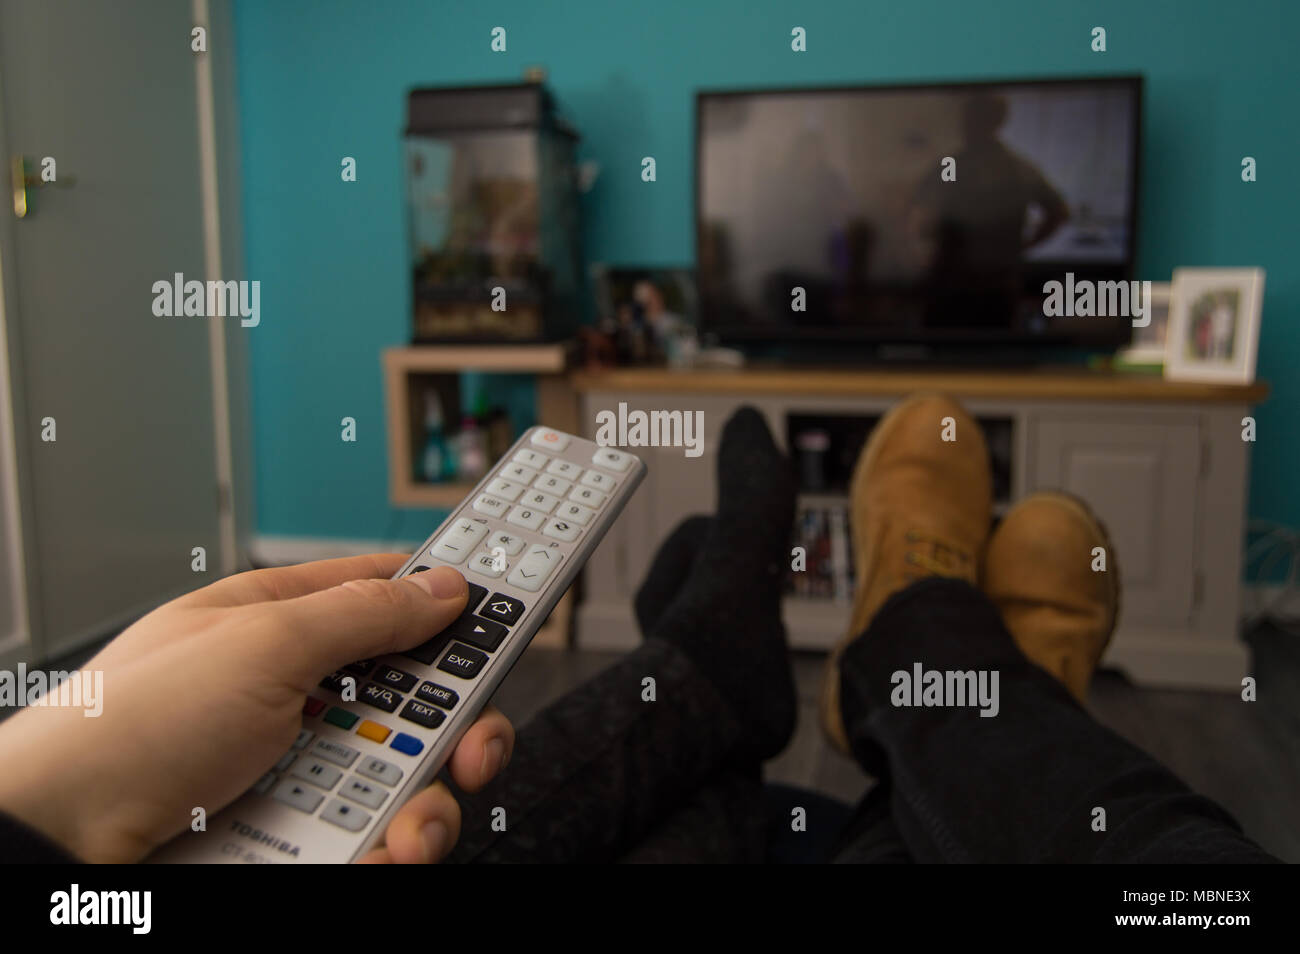 Couple watching television from a first-person perspective - Stock Image